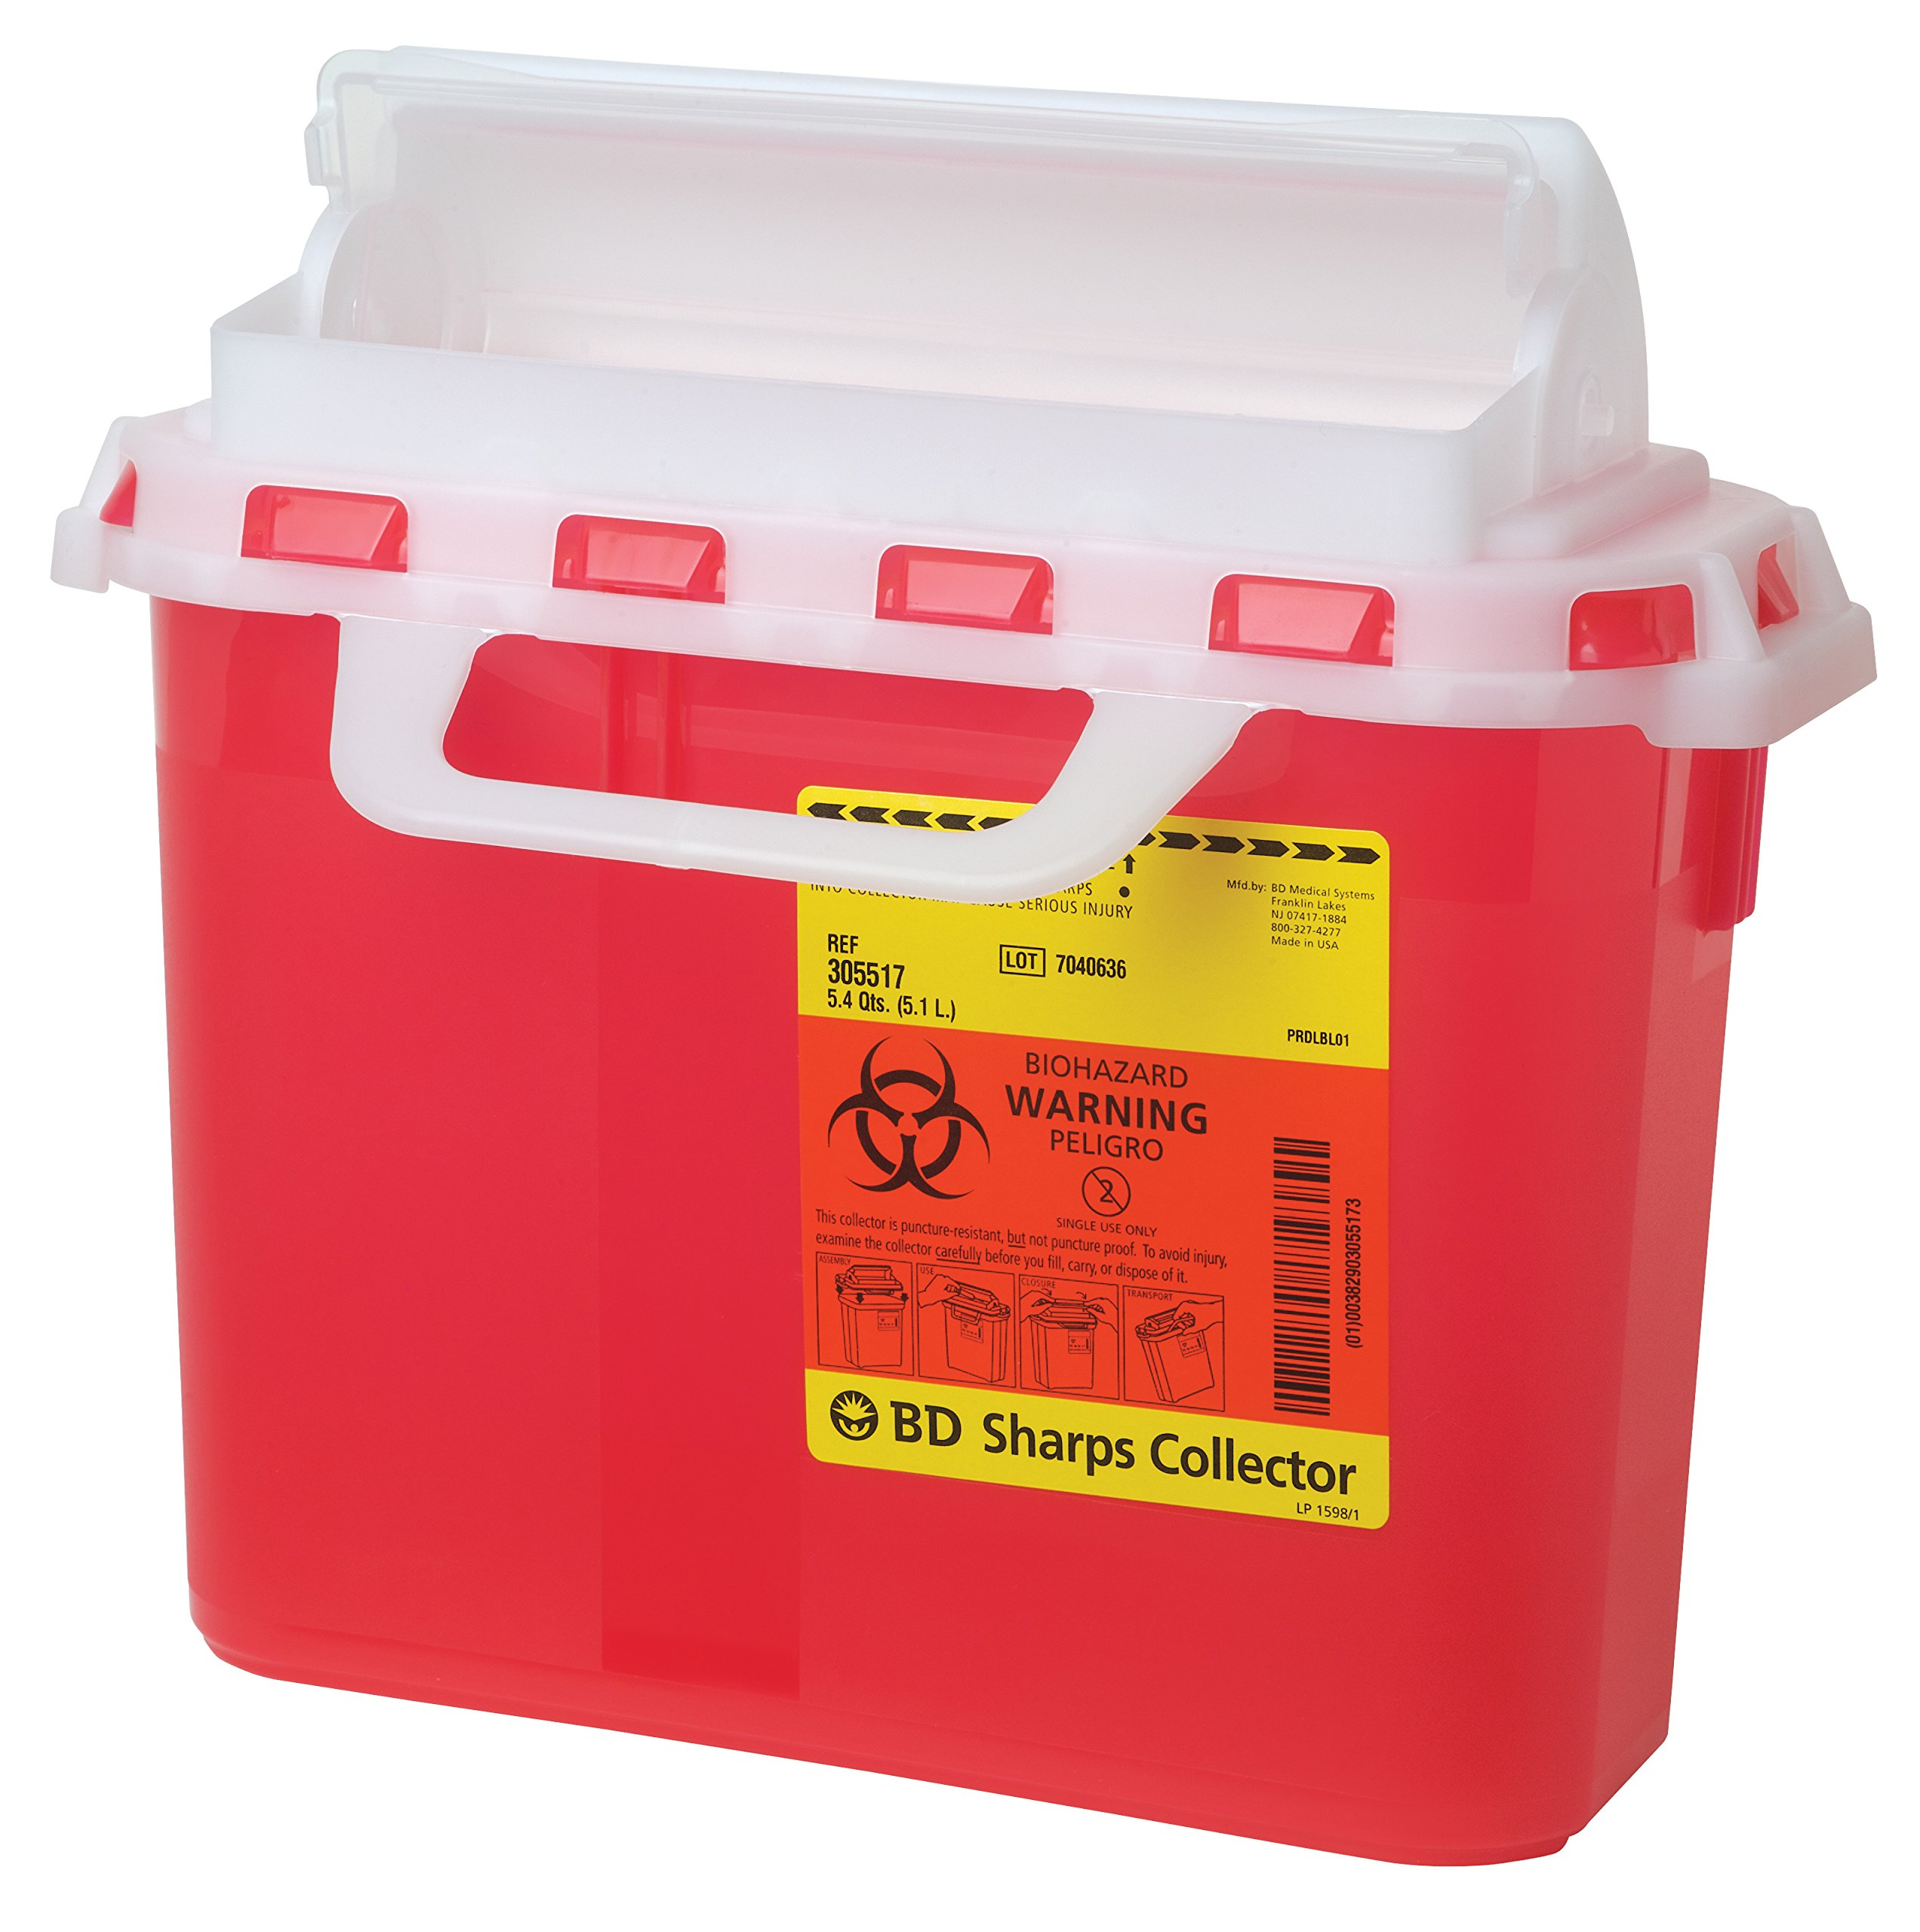 BD Medical Systems 305517 Sharps Collector with Counterbalanced Door, Horizontal, 5.4 Quart Capacity, 10.75'' Height x 12'' Width x 4.5'' Depth, Red (Pack of 20) by BD MEDICAL SYSTEMS